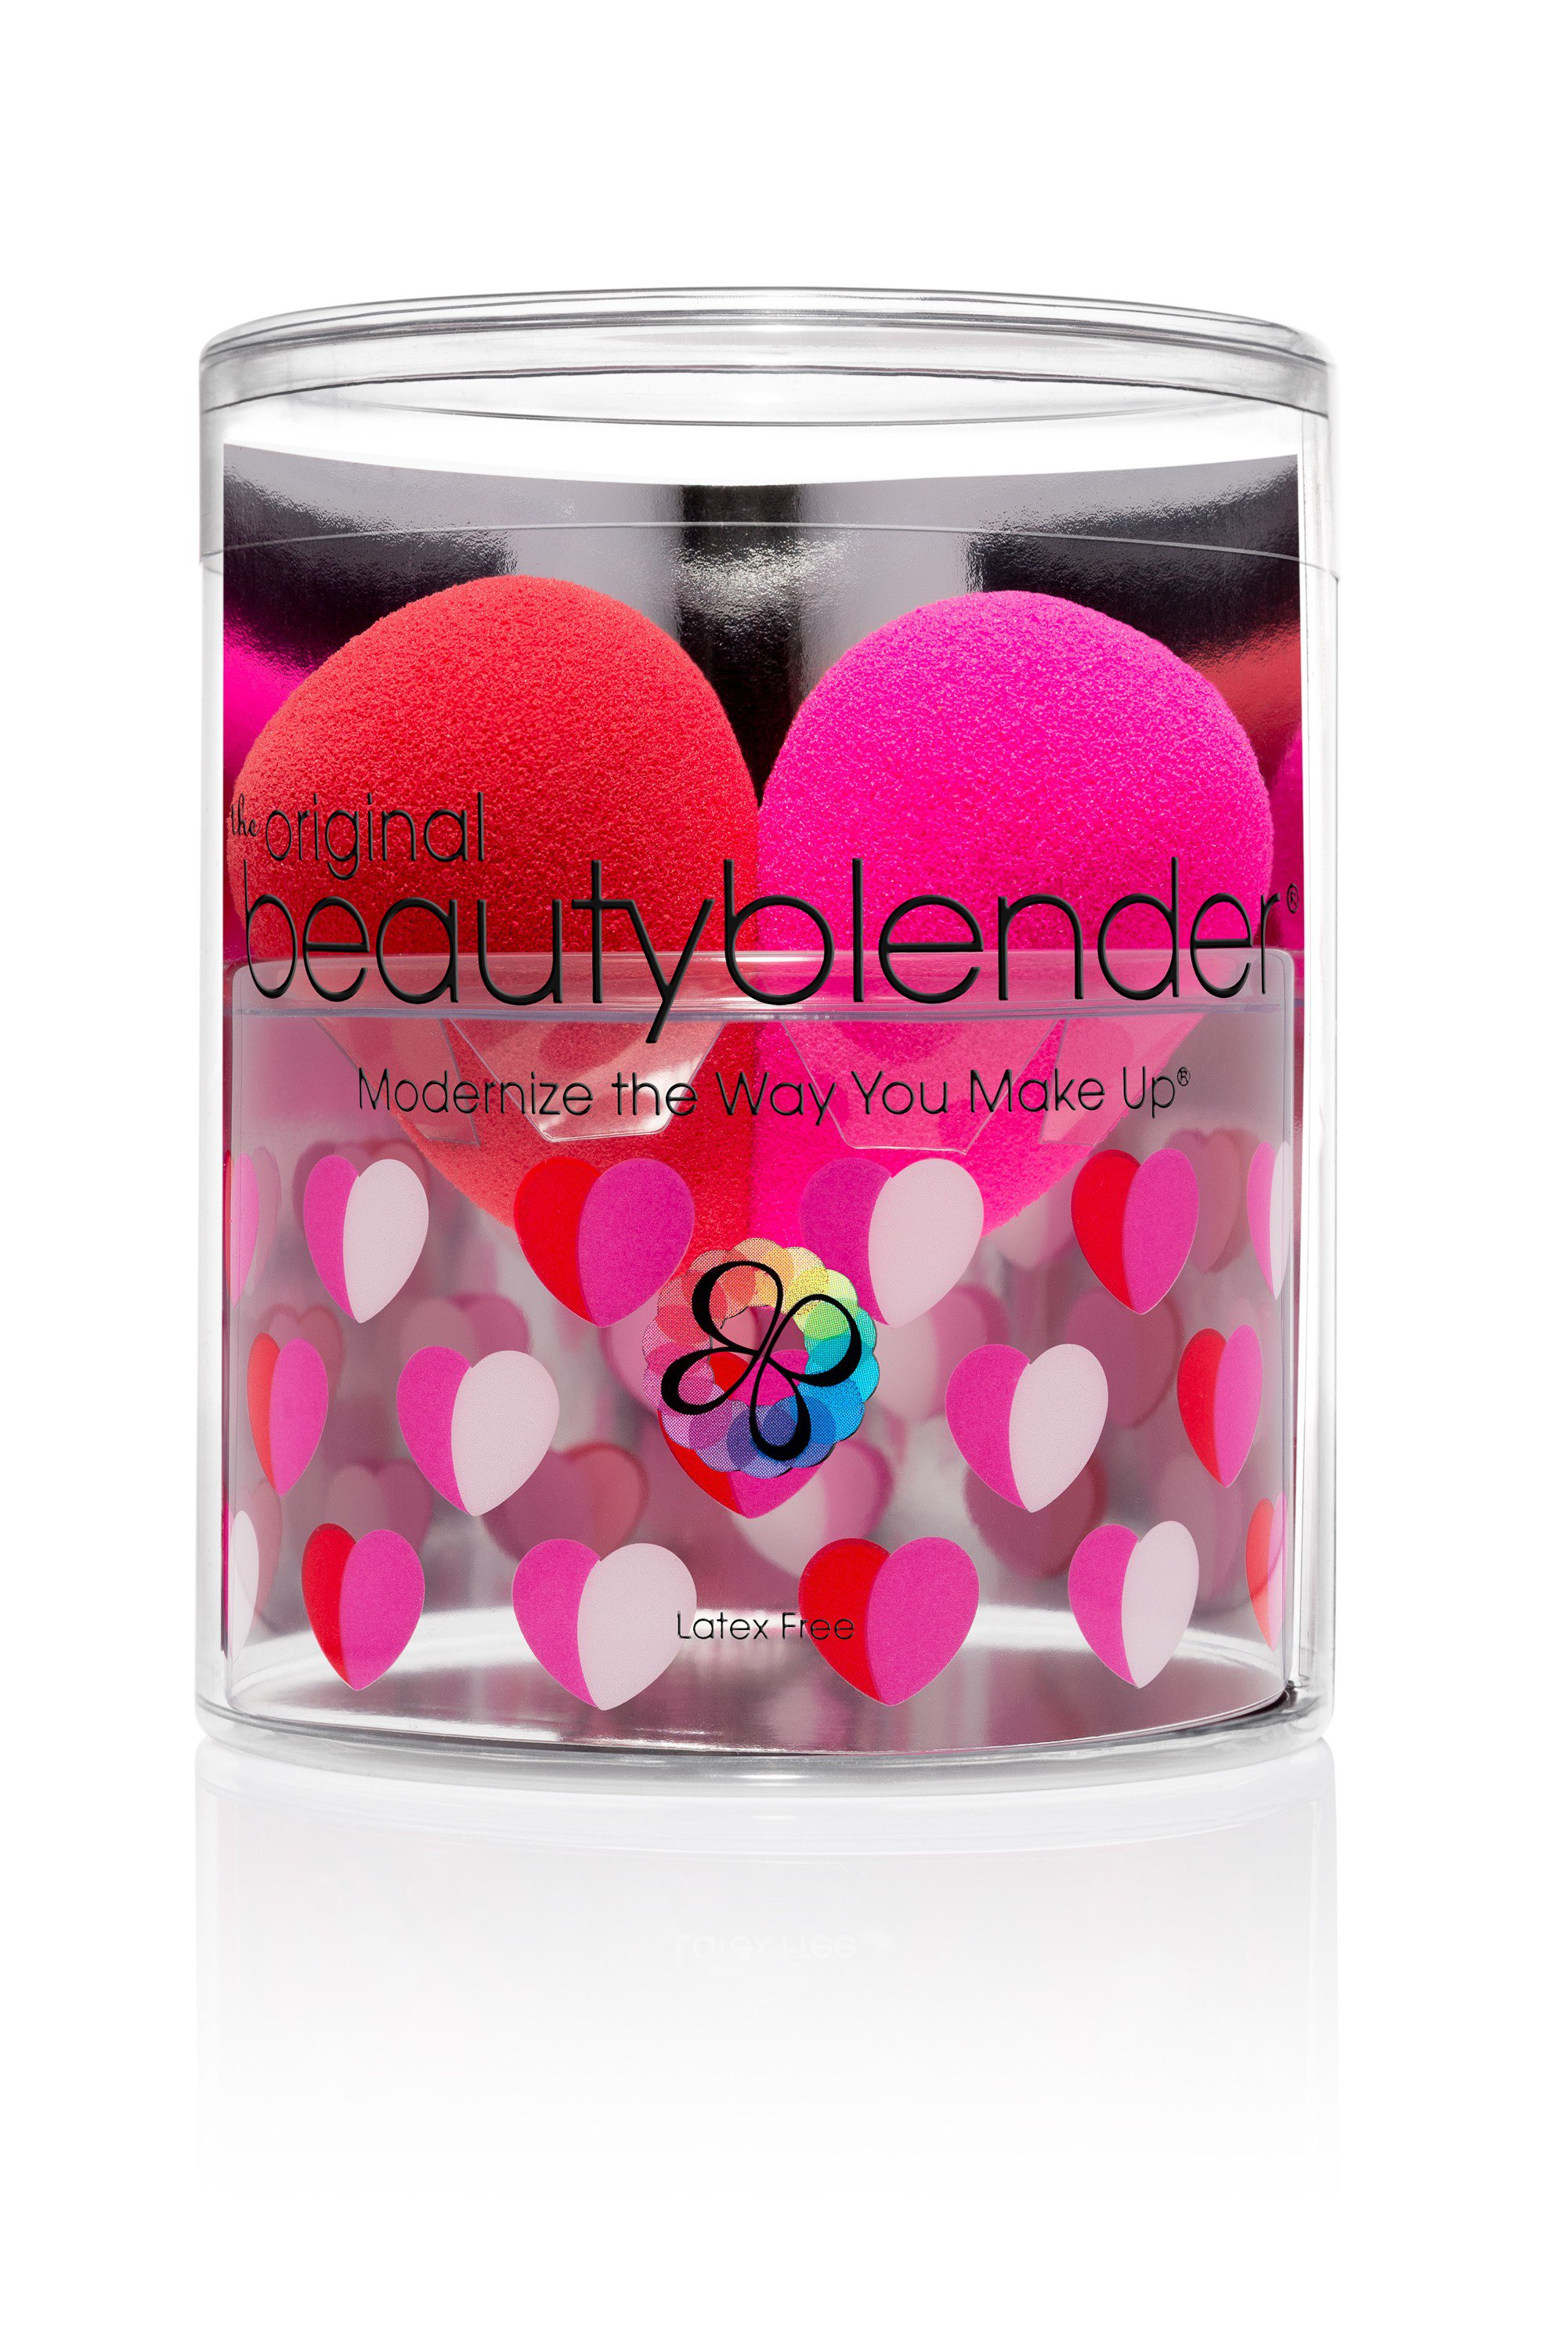 The beauty blender is a tool that makes your makeup application flawless. Use it with favorite primers, cream foundations, loose and pressed powders, cream blushes and any must-have complexion product.